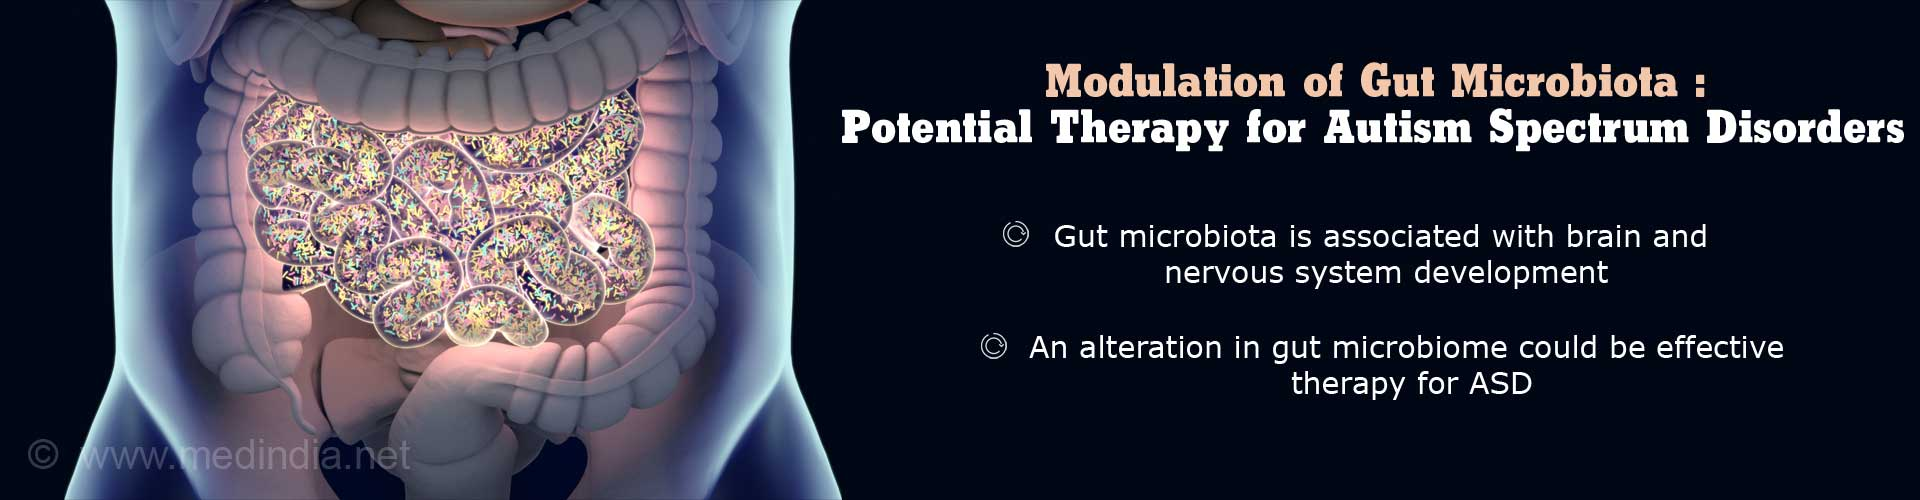 Altering Gut Microbiota: A Potential Therapy for Autism Spectrum Disorders (ASD)